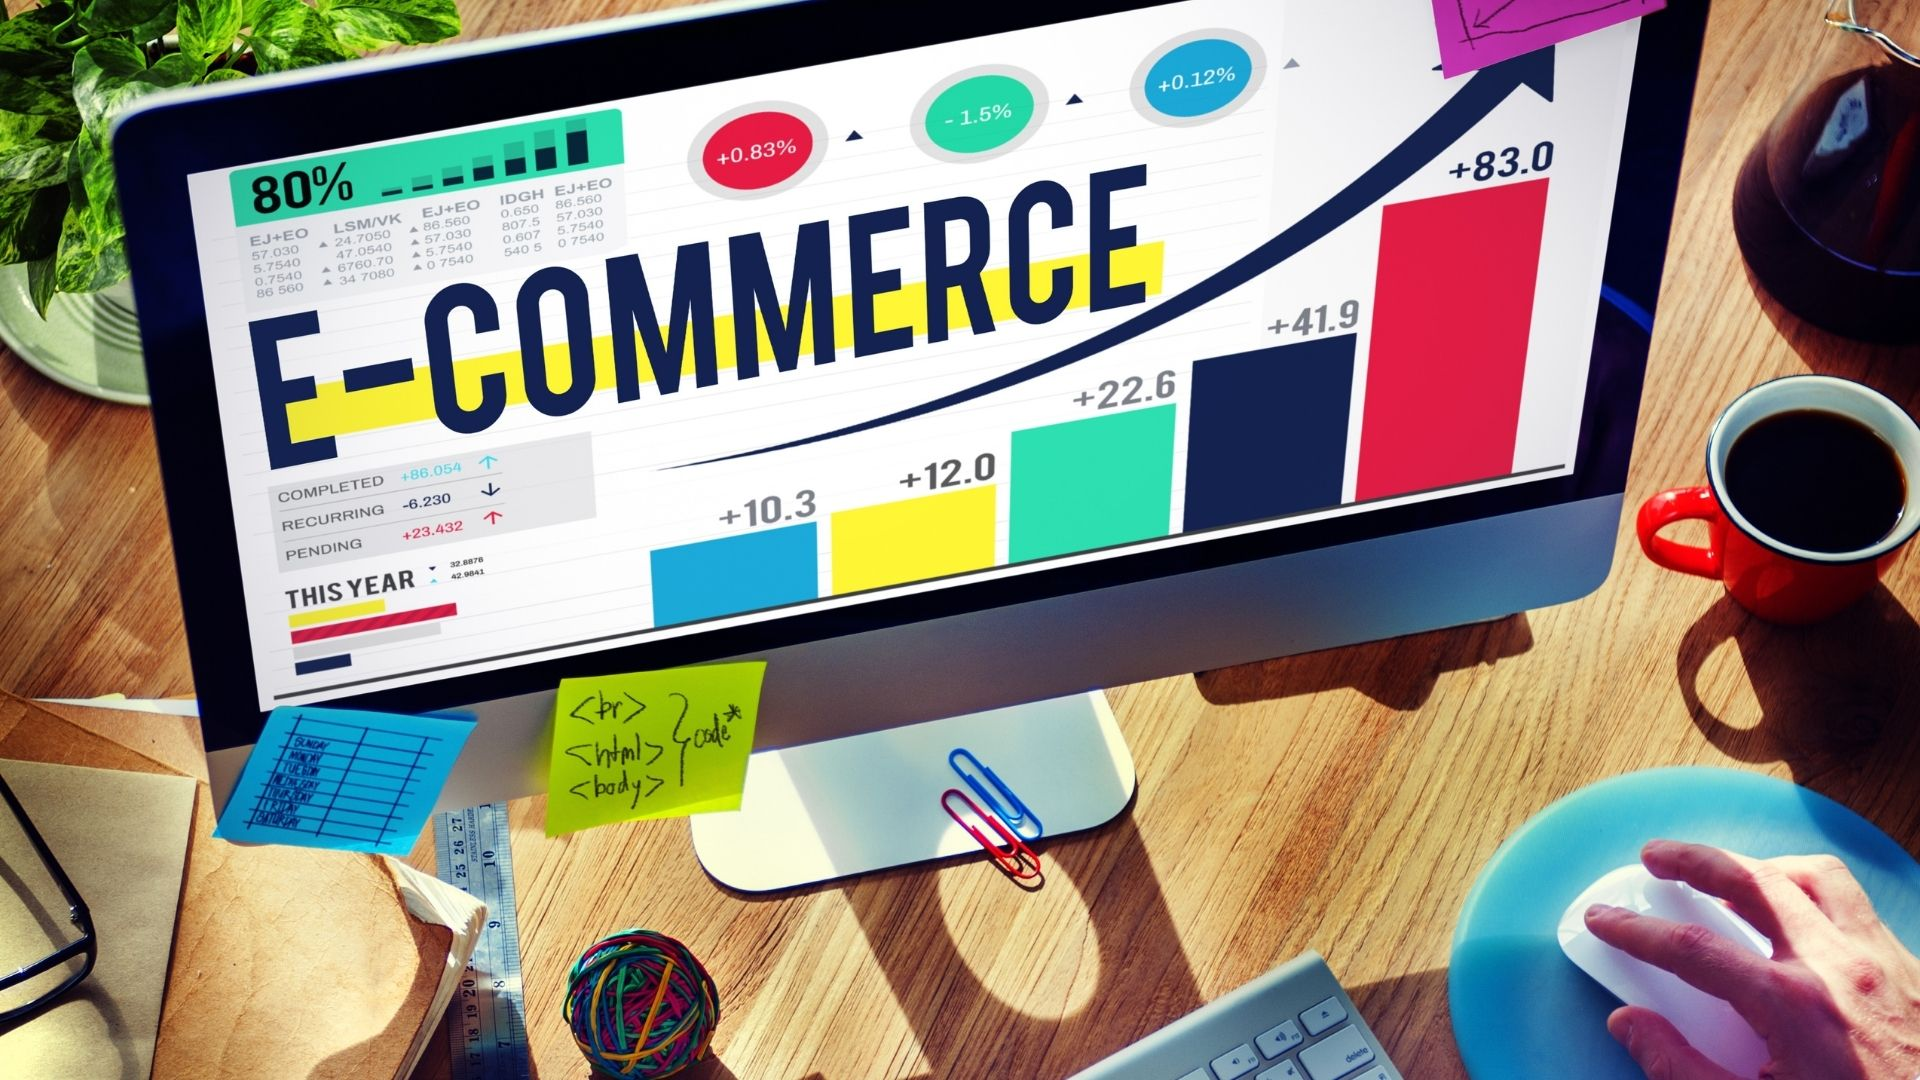 10 Ecommerce User Experience (UX) Best Practices To Boost Your Sales